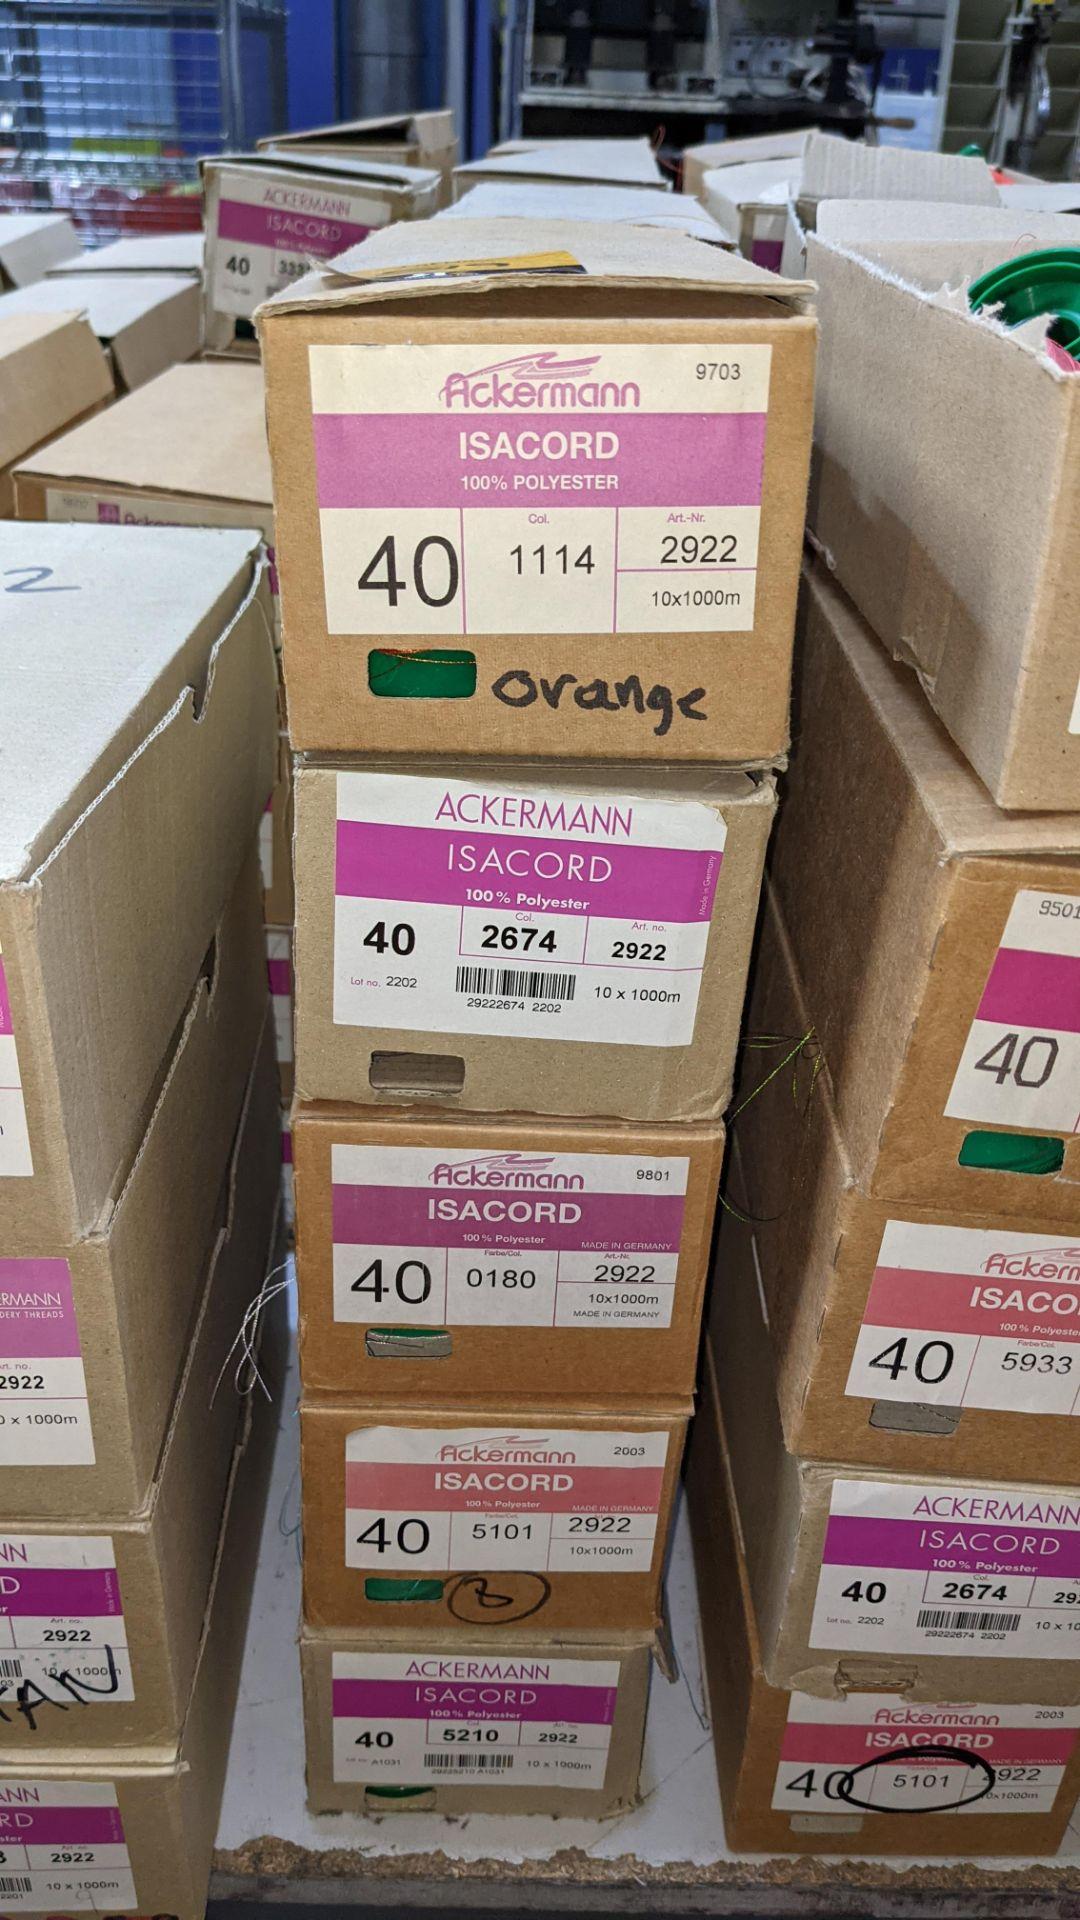 20 boxes of Ackermann Isacord (40) polyester thread - Image 3 of 9